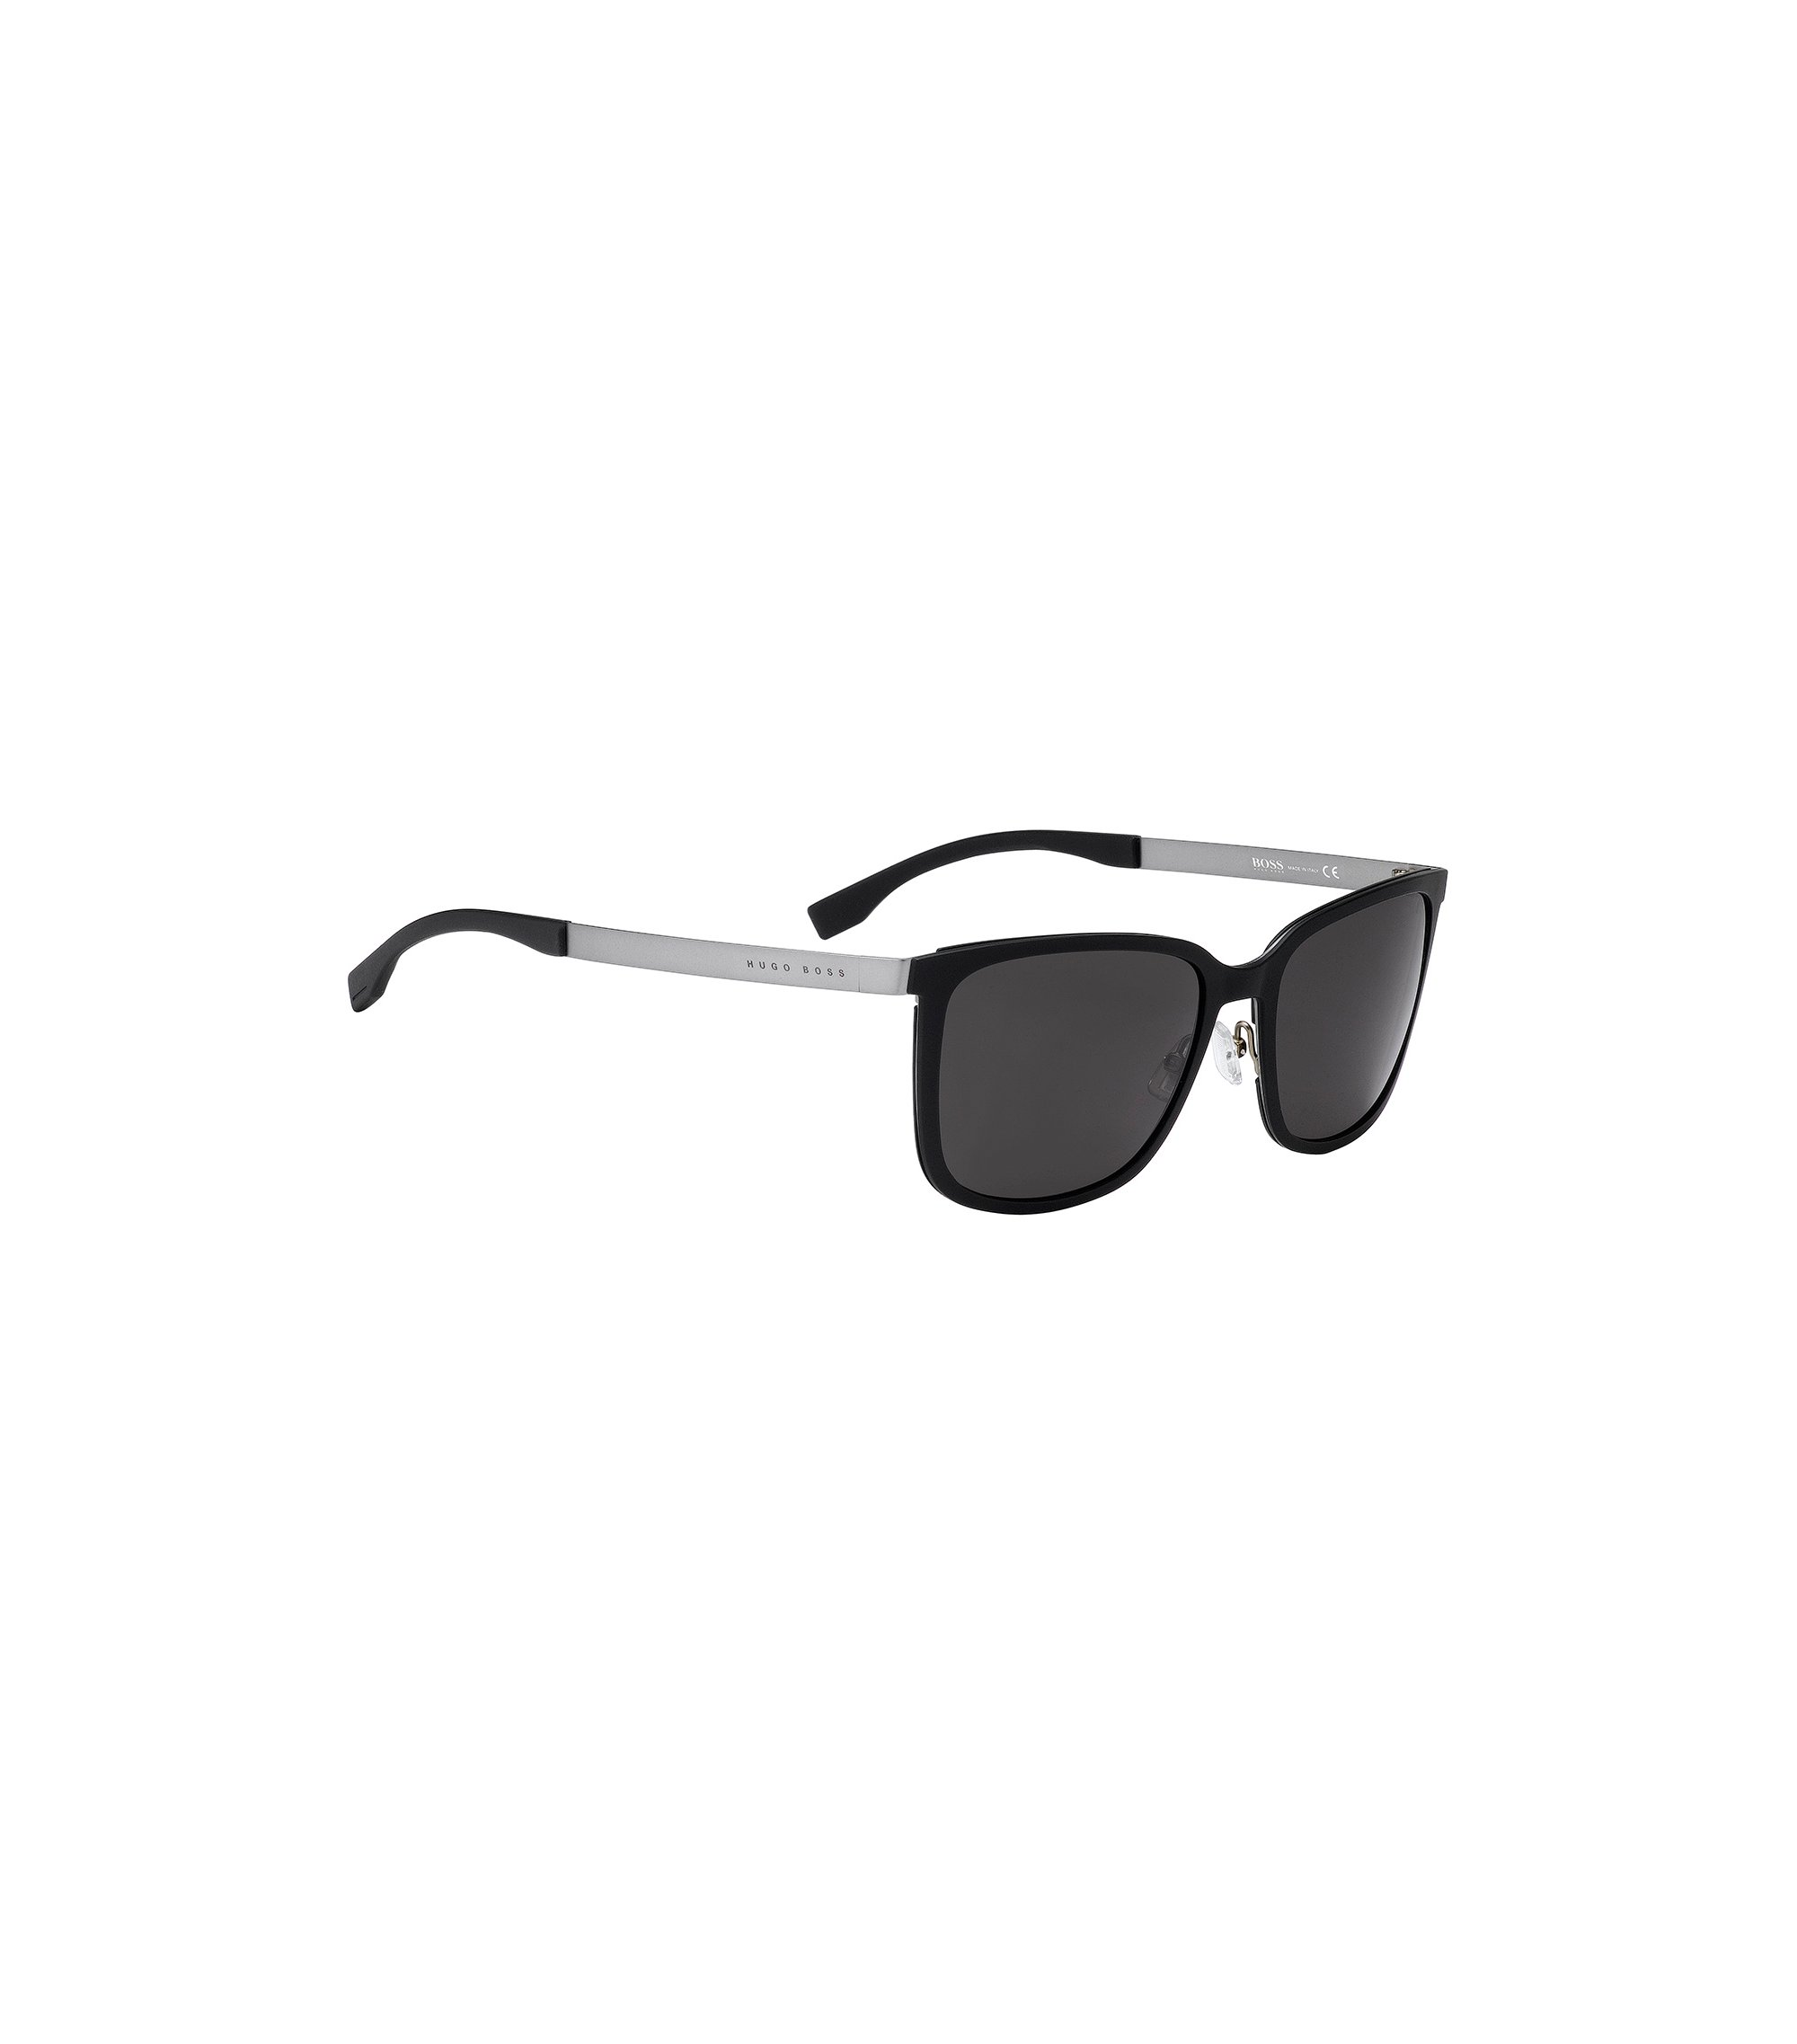 Sonnenbrille: 'BOSS 0723/S', Assorted-Pre-Pack